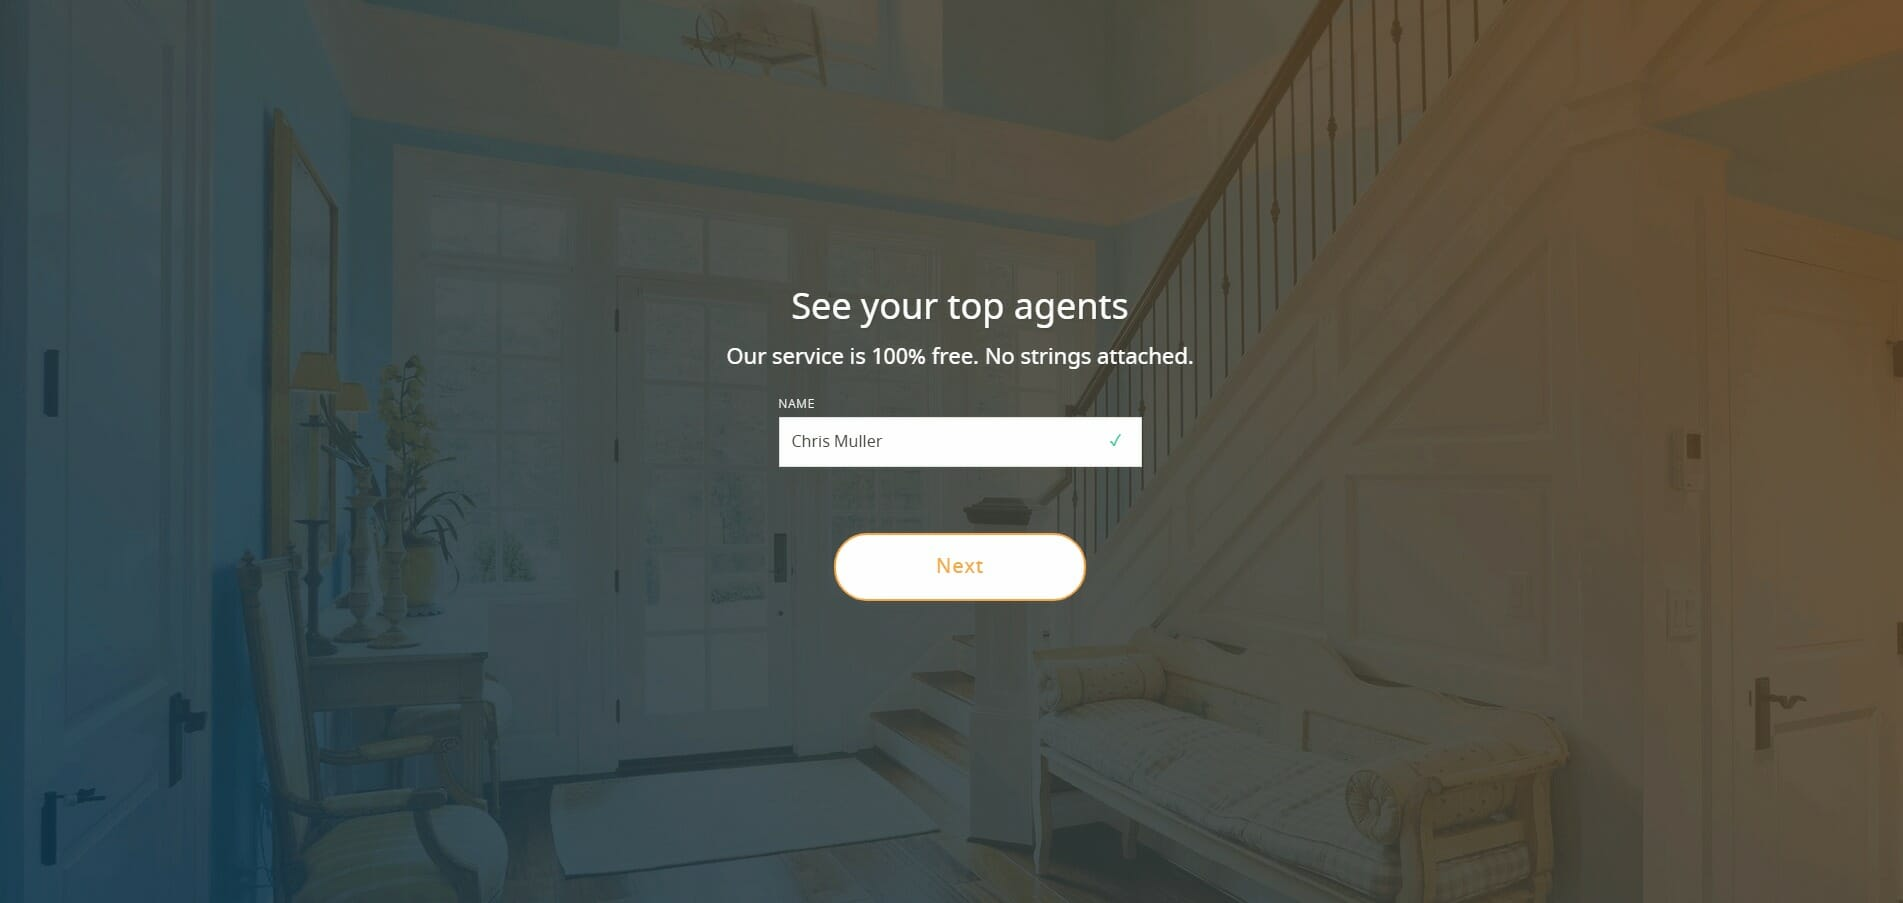 see your top agents